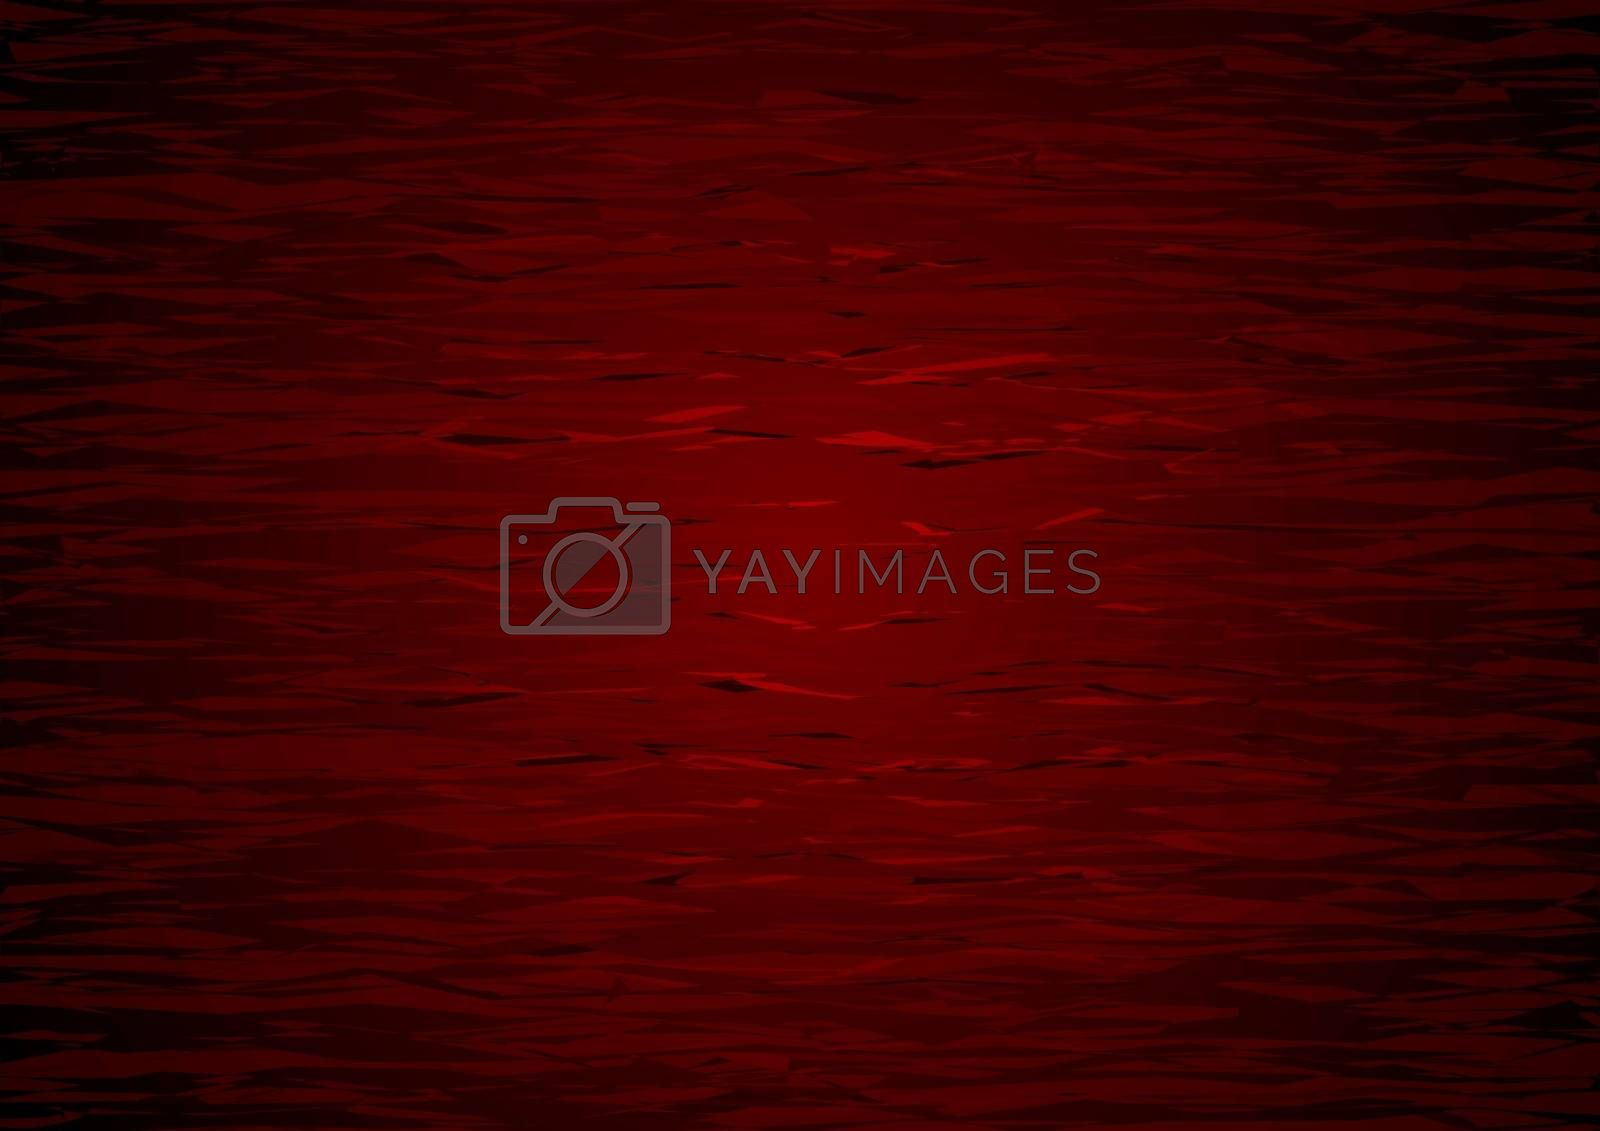 Abstract Red Texture - Wood Structure Background Illustration, Vector